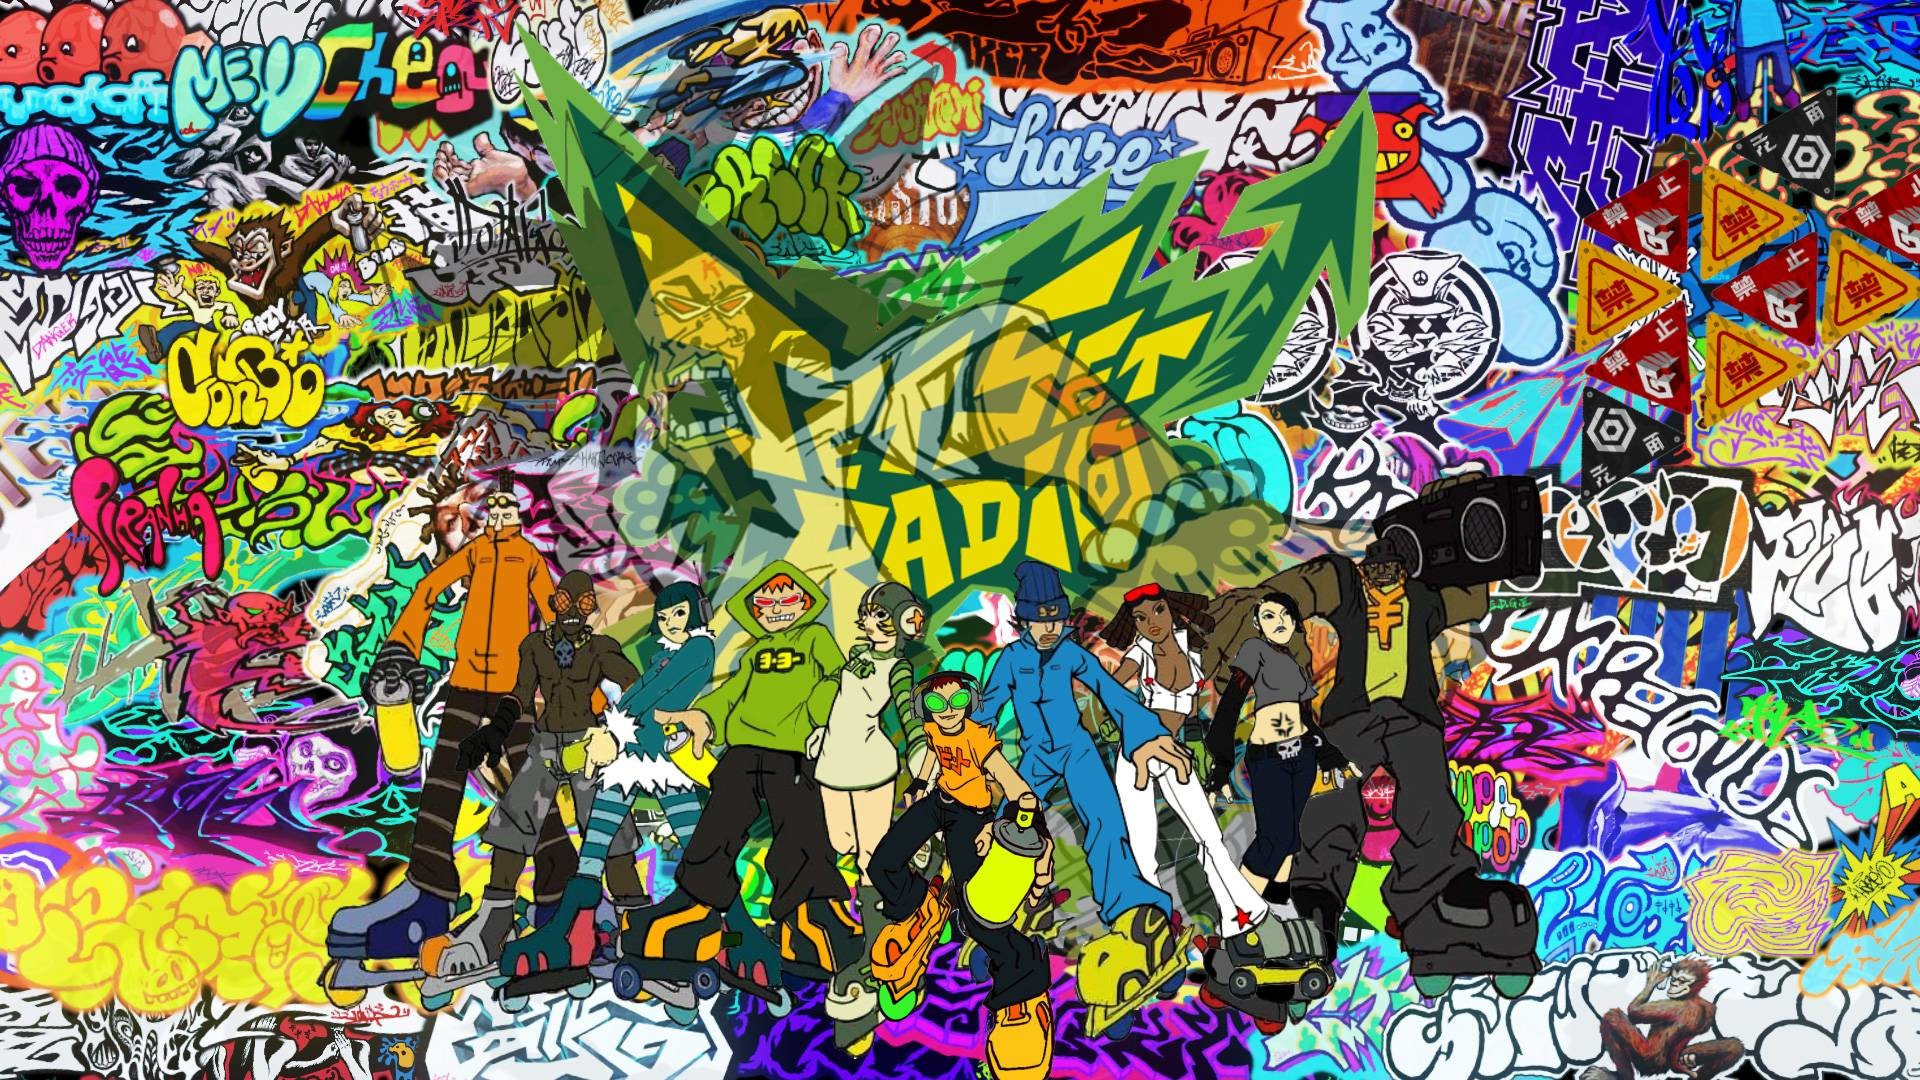 1920x1080 Video Game Jet Set Radio Wallpaper 1920x1080 px Free Download .